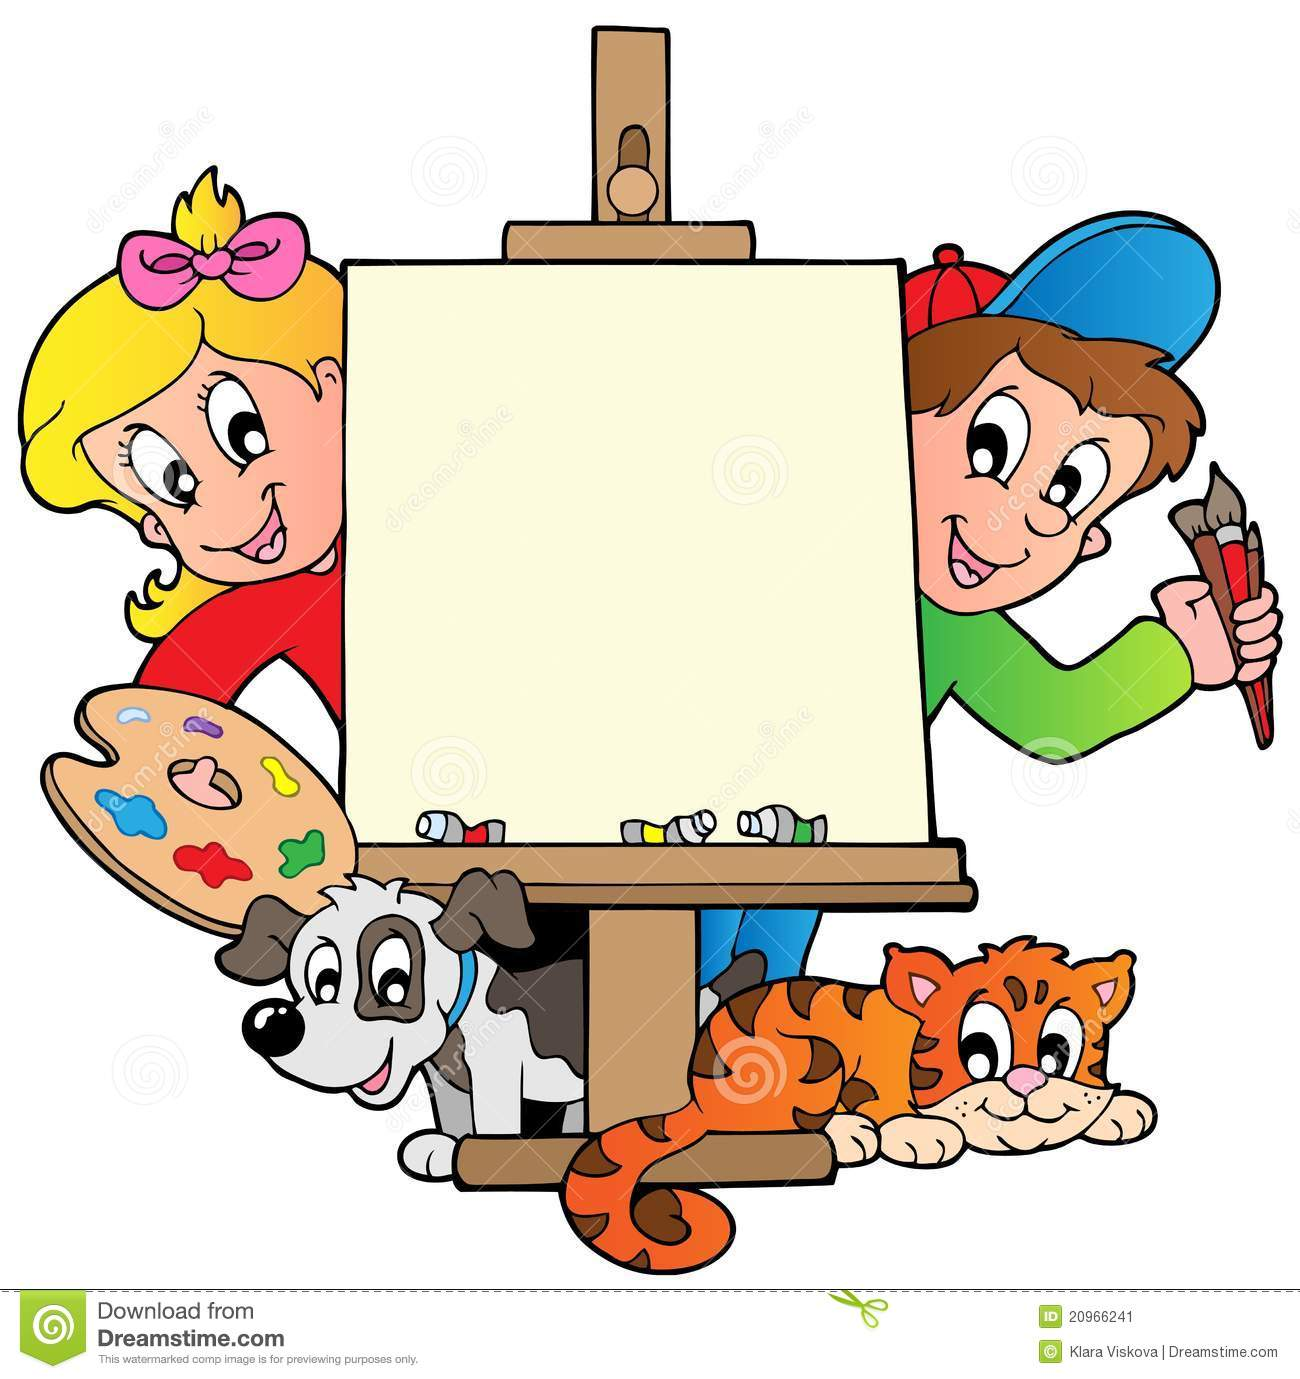 canvas cartoon illustration kids painting - Painting Images For Kids